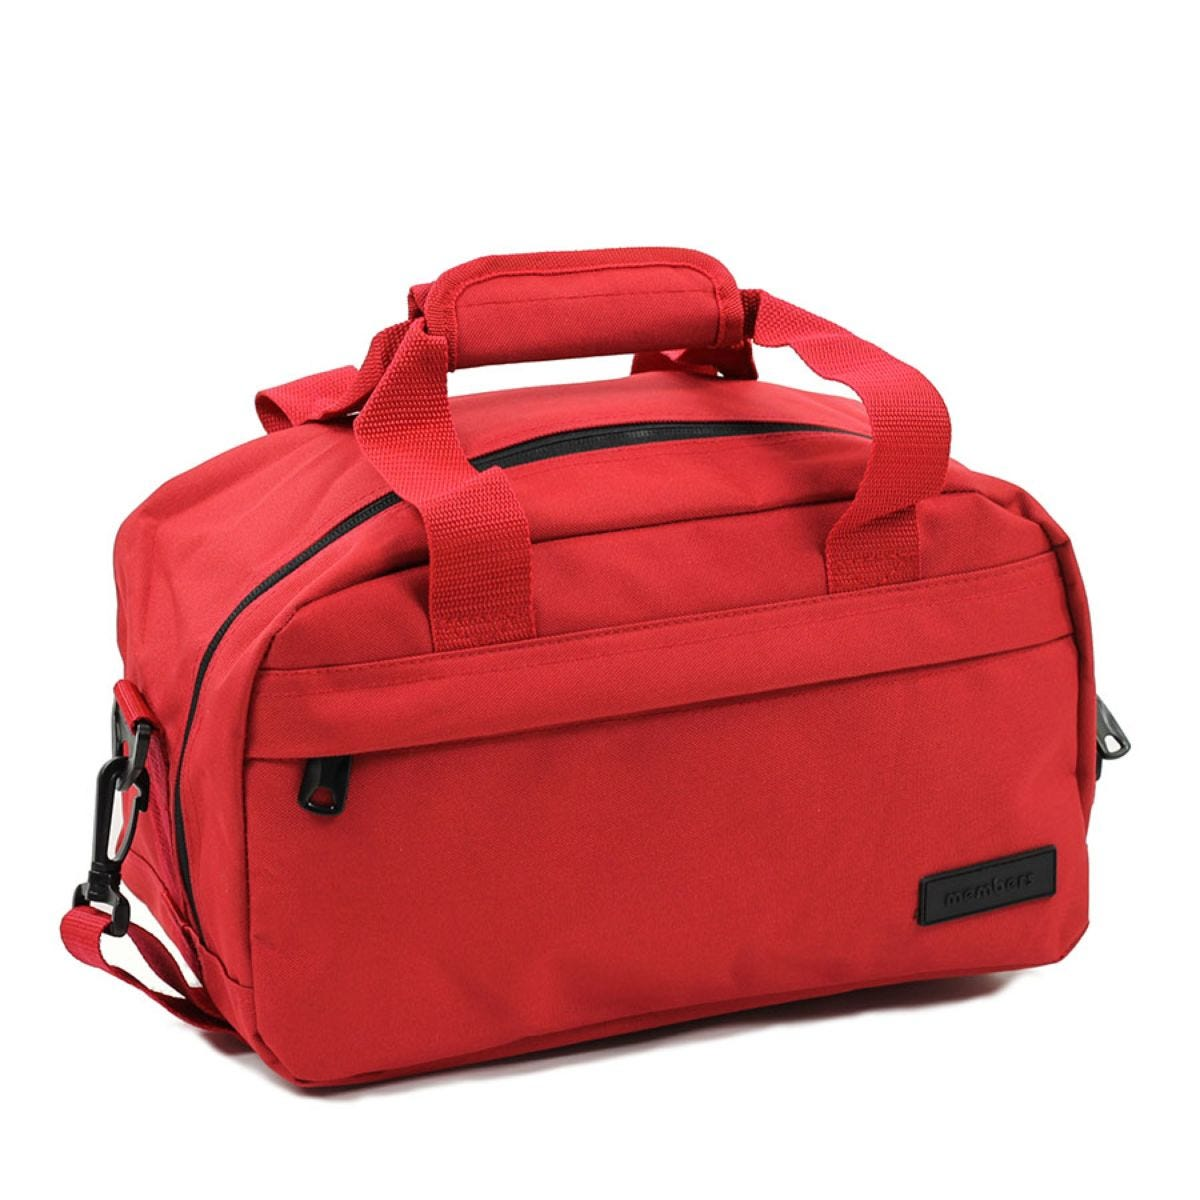 Members by Rock Luggage Essential Under-Seat Hand Luggage Bag – Red